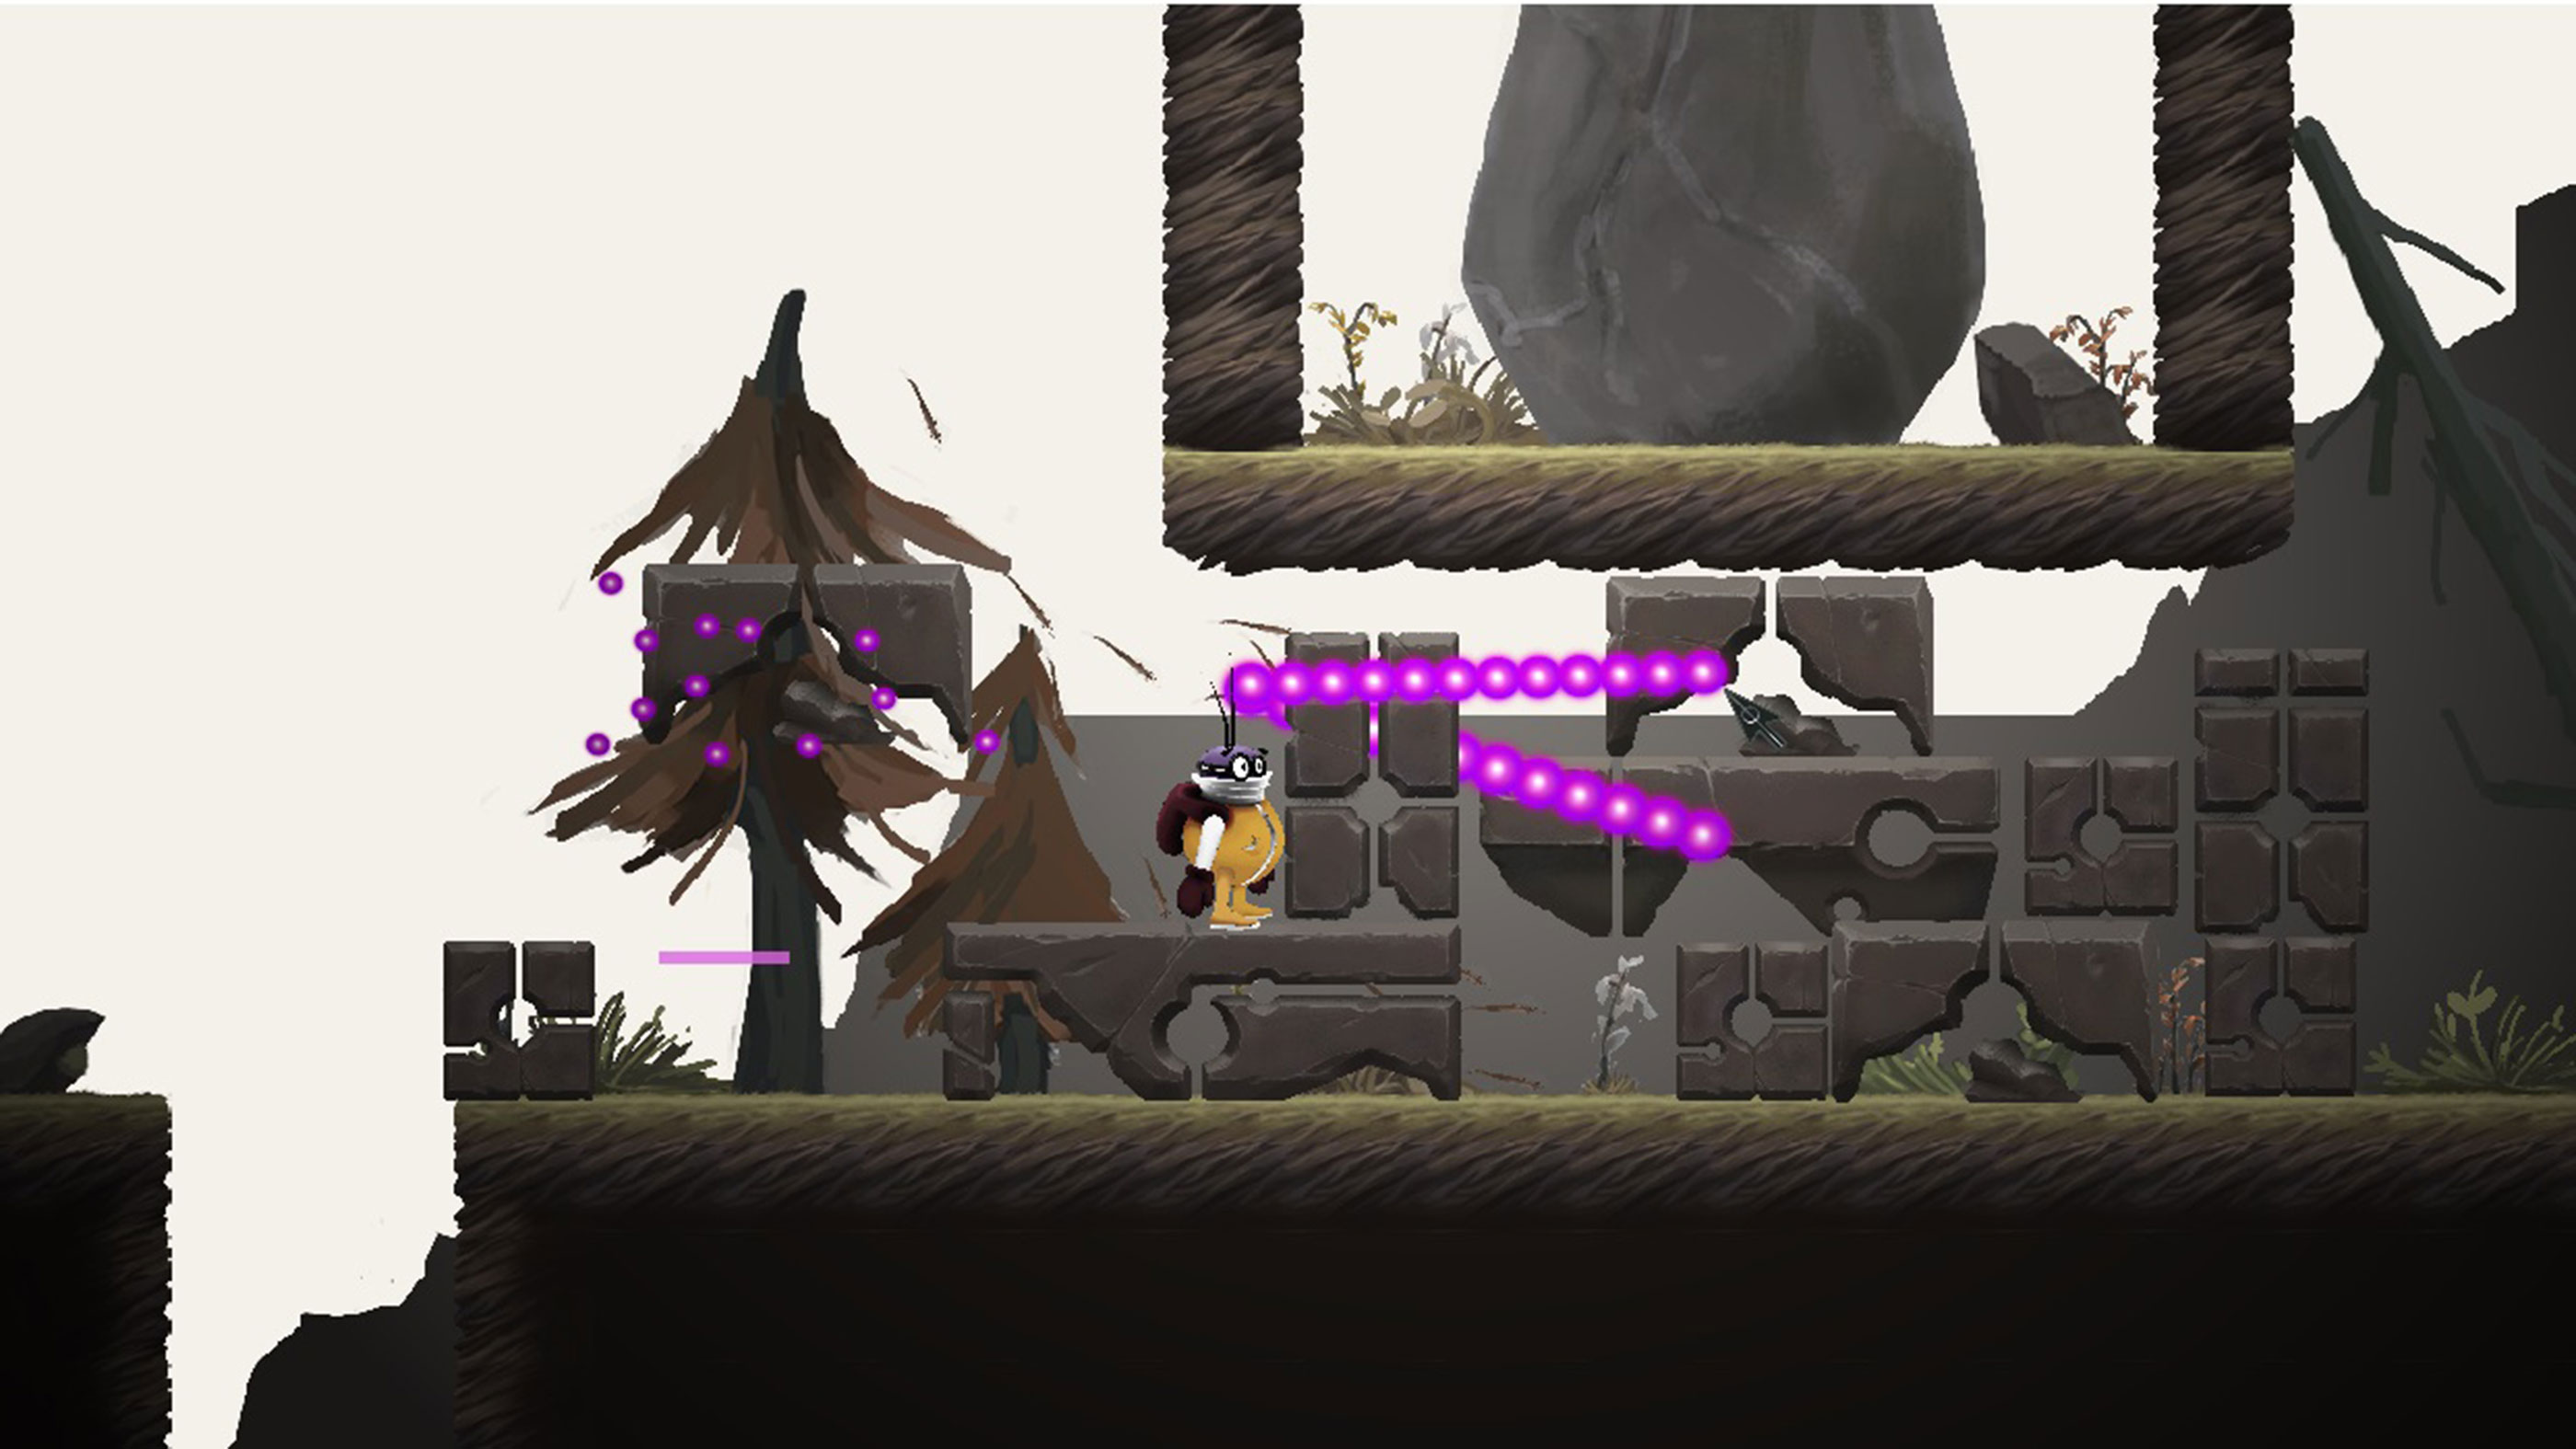 Pilot character surrounded by trees, rocks, and alien ruins